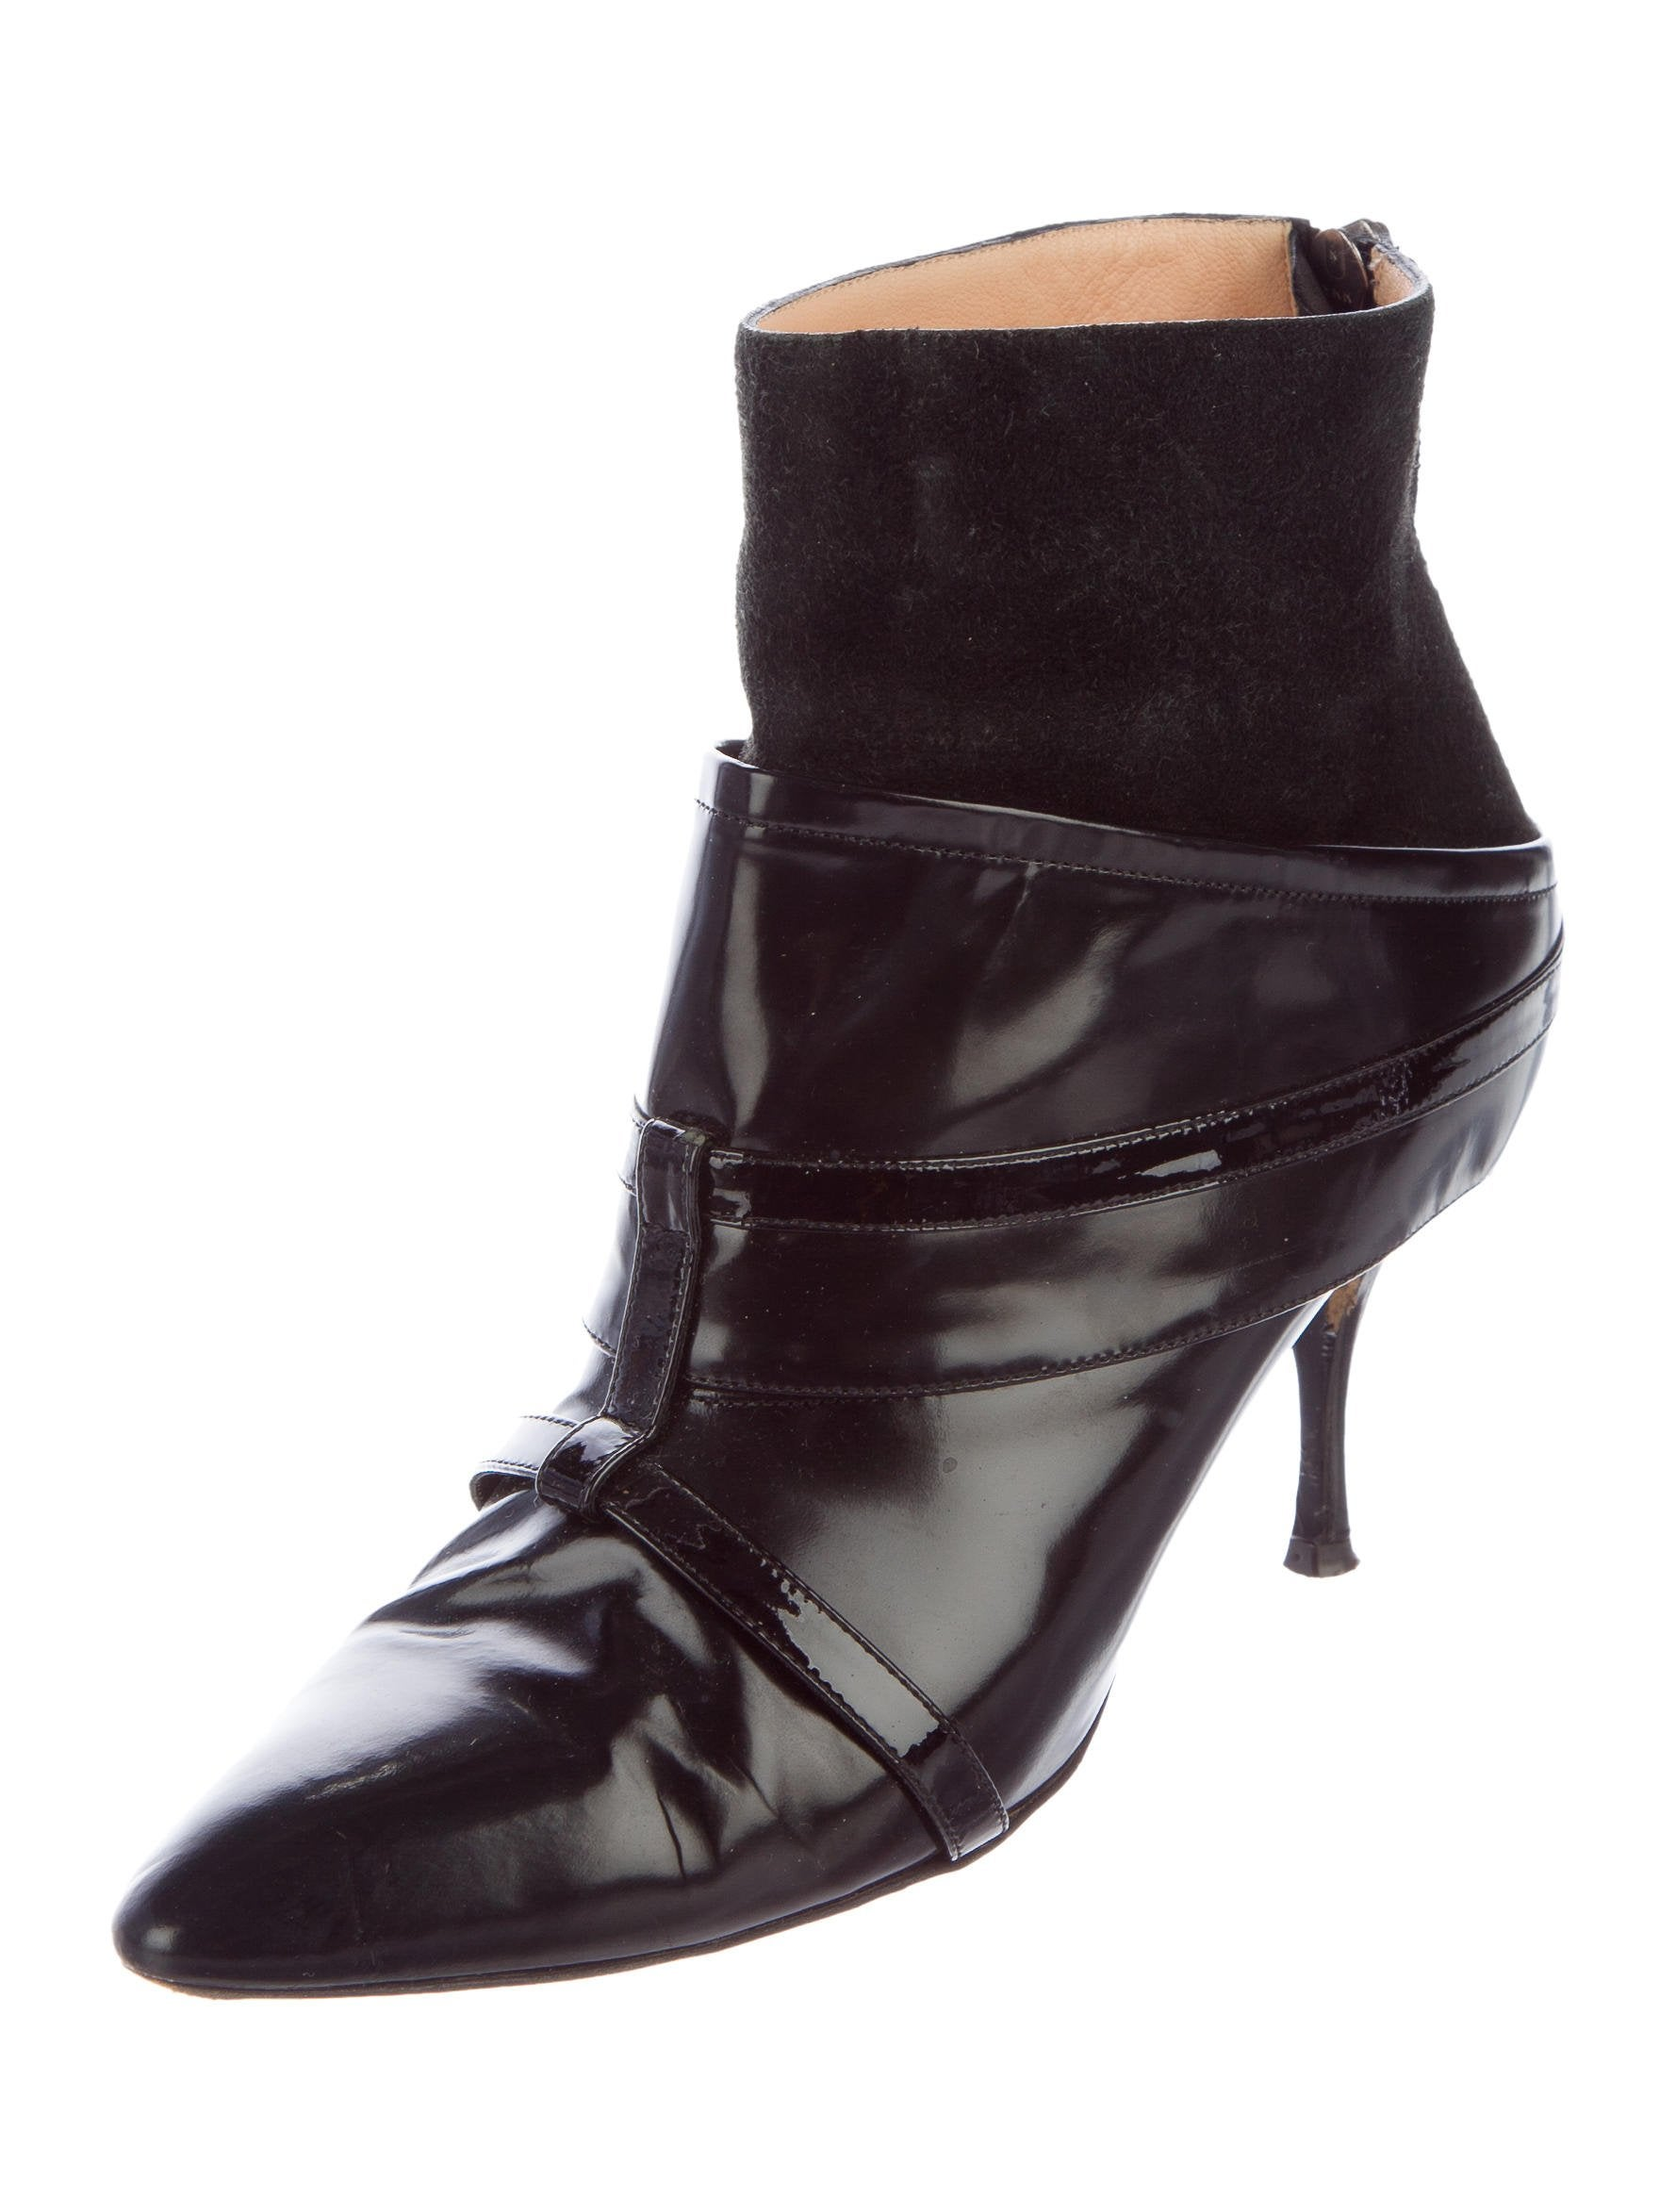 Jean Paul Gaultier Pointed-Toe Leather Ankle Boots discount 2014 free shipping best store to get I6oPf9